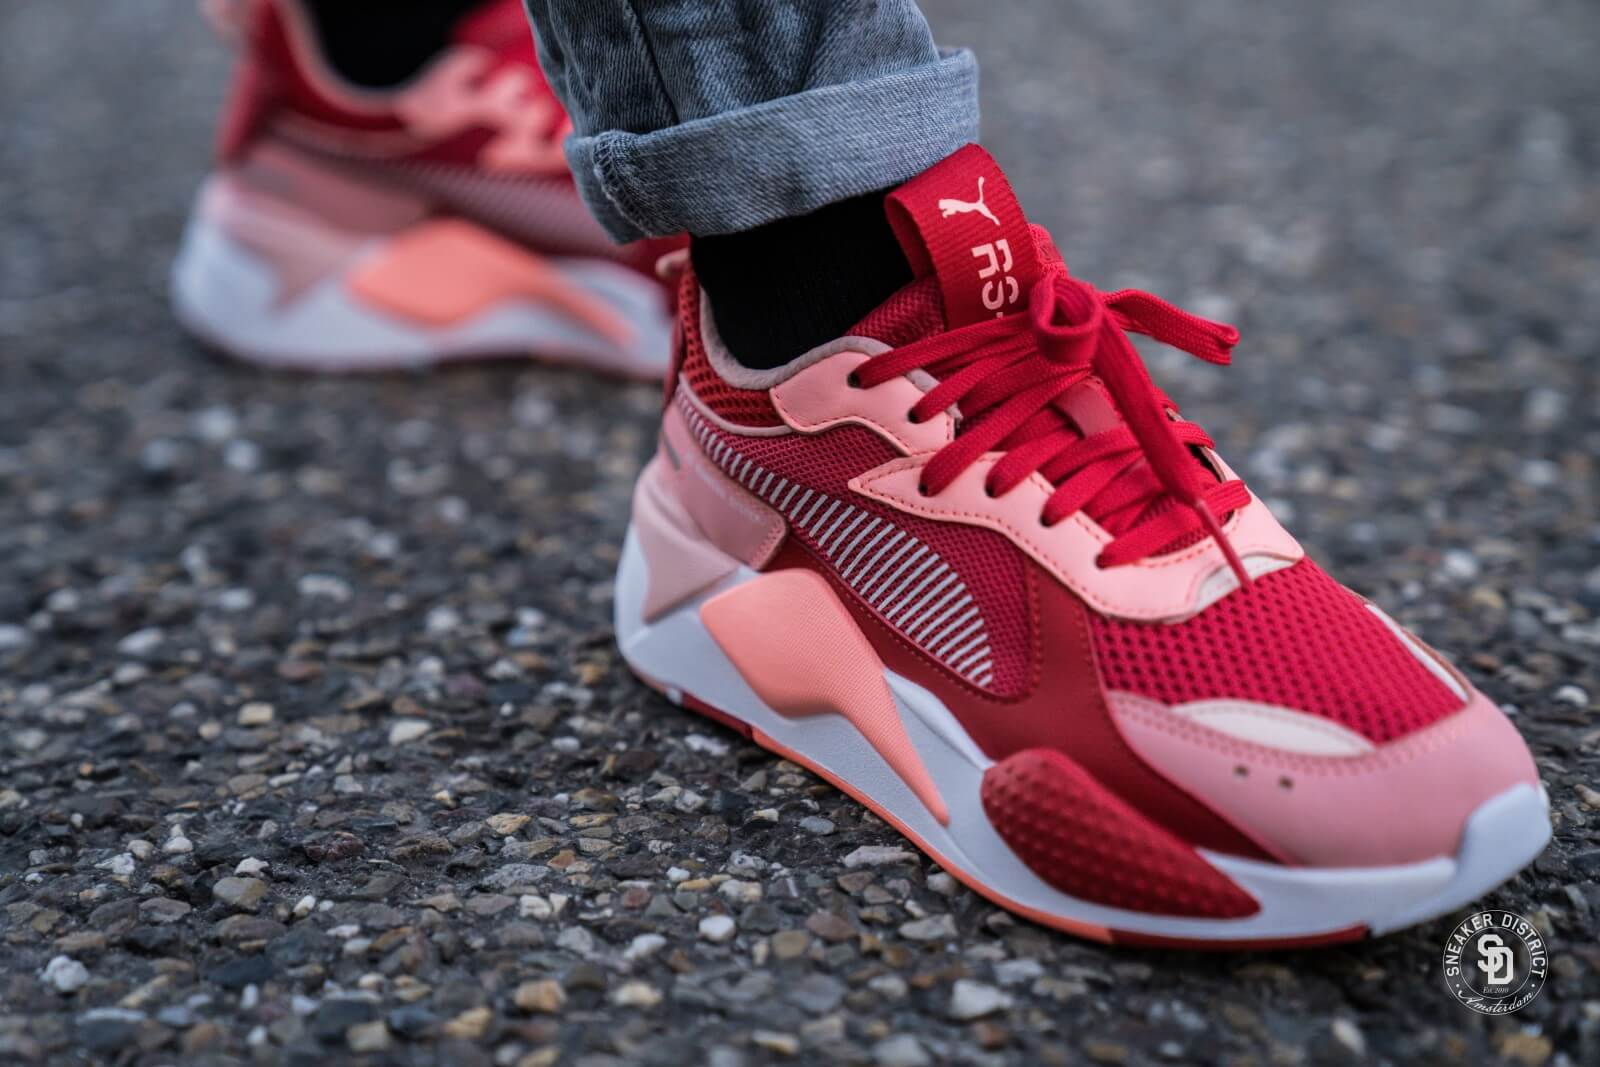 Puma RS-X Toys Bright Peach/High Risk Red - 0369449-07